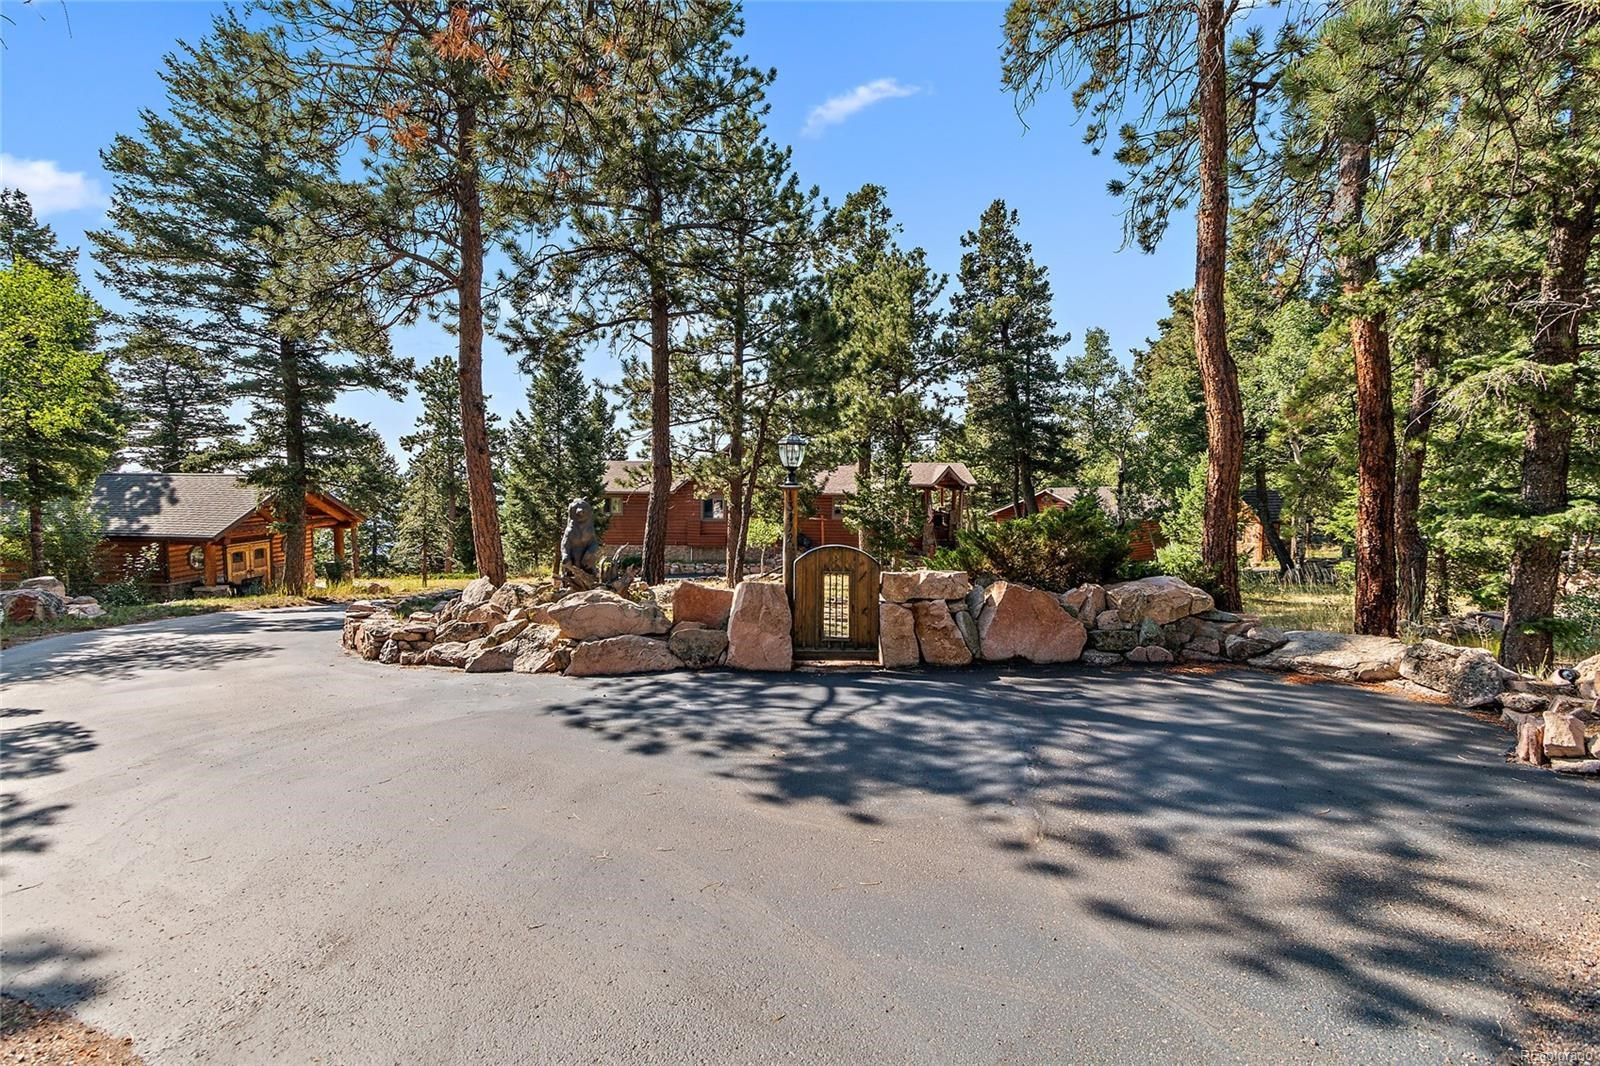 MLS# 1581293 - 2 - 13472 Riley Peak Road, Conifer, CO 80433